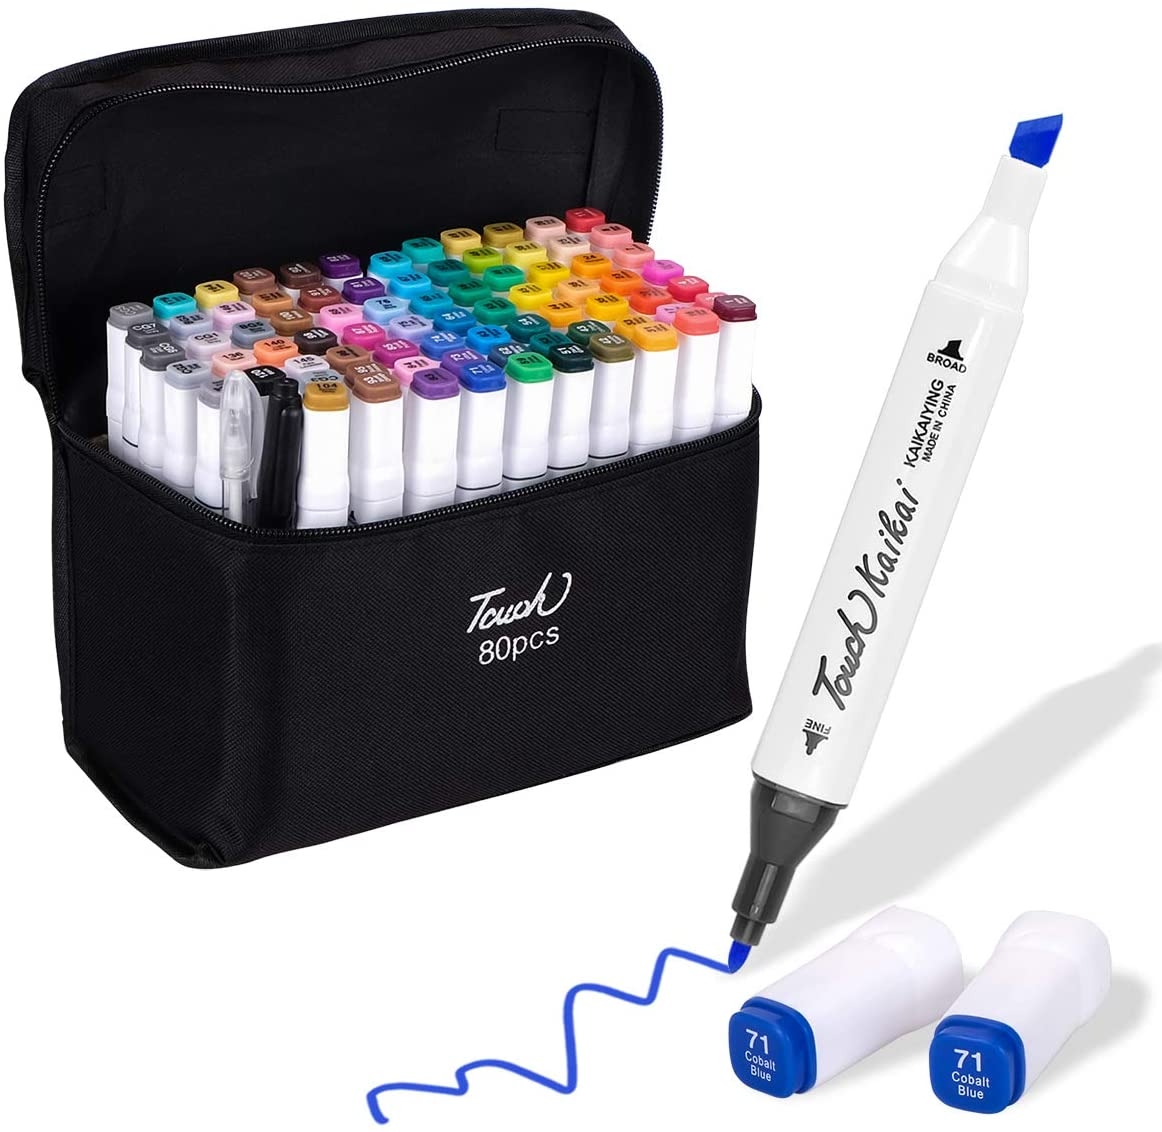 Indoor Ultima 40 Colors Dual Tip Art Permanent Markers Set, Advanced Brush Markers Pen Perfect for Artists Drawing,Sketching,Card Making, Fineliner, Colorless Blender,Carrying bag Included